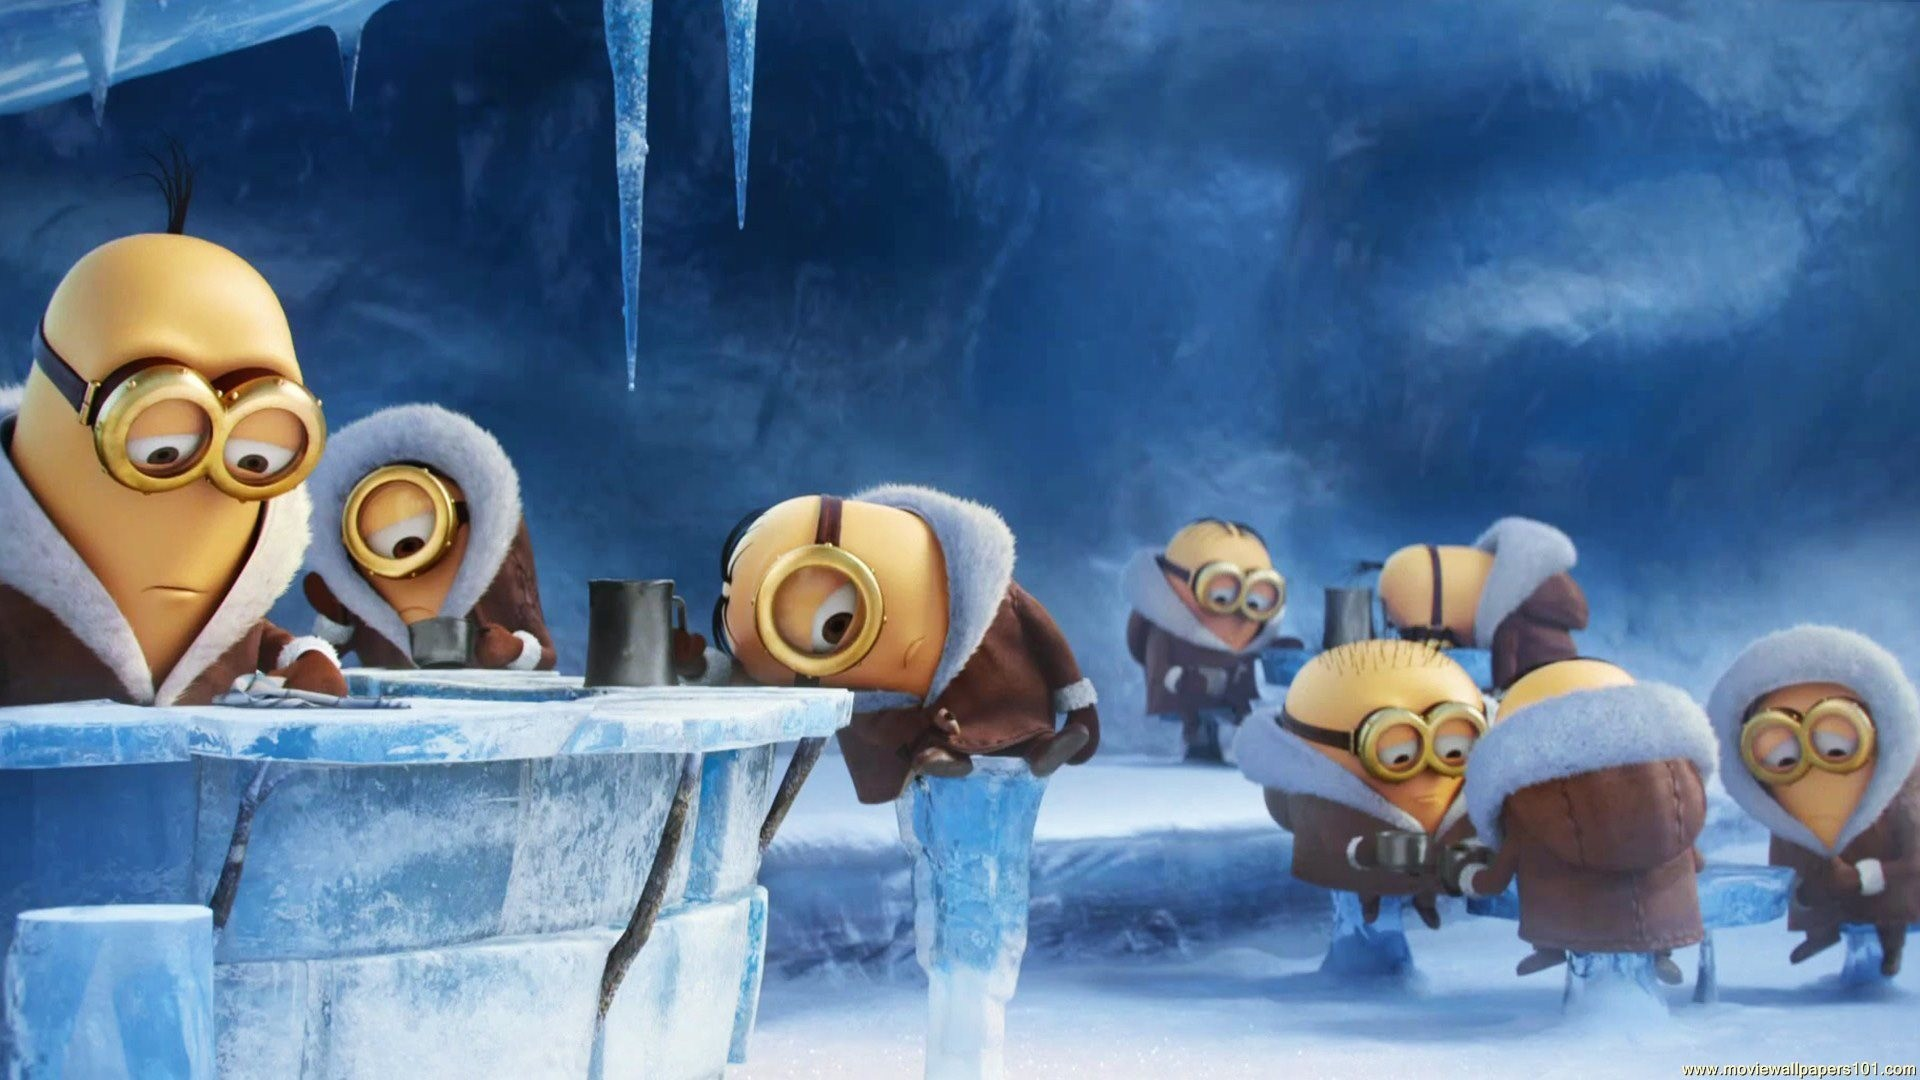 Gallery images and information: Free Minion Screensaver